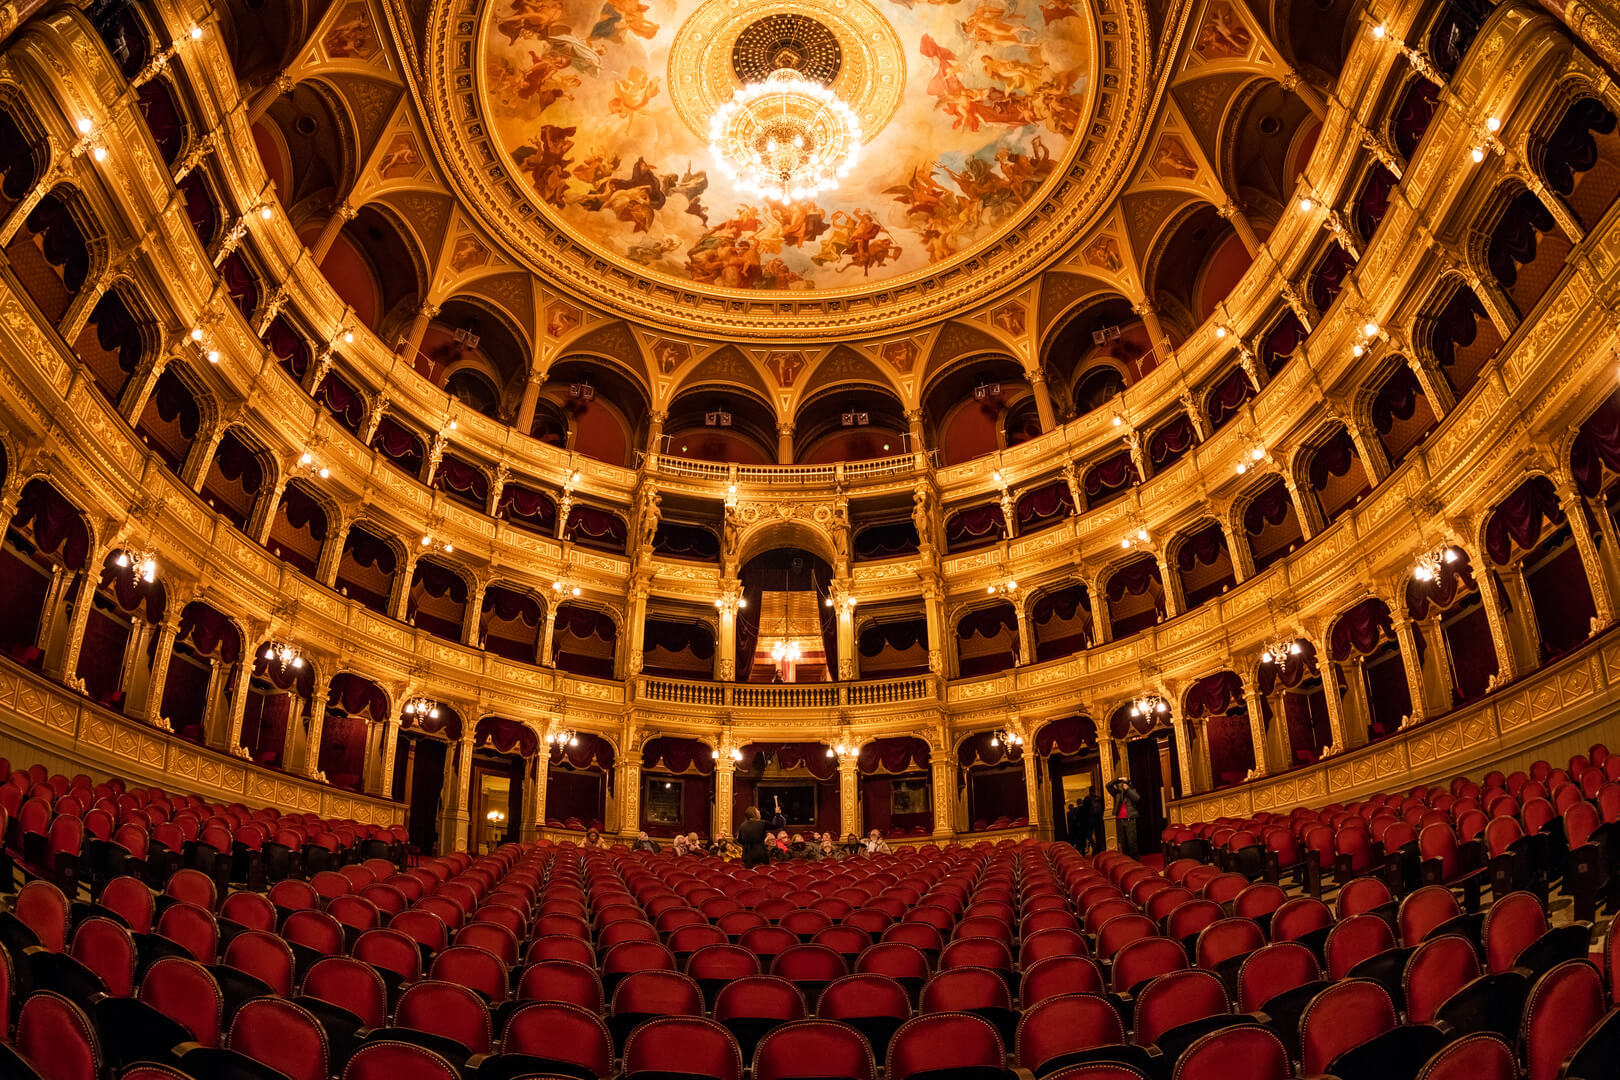 Interior of the Hungarian Royal State Opera House, considered one of the architect's masterpieces and has the third best acoustics in Europe.